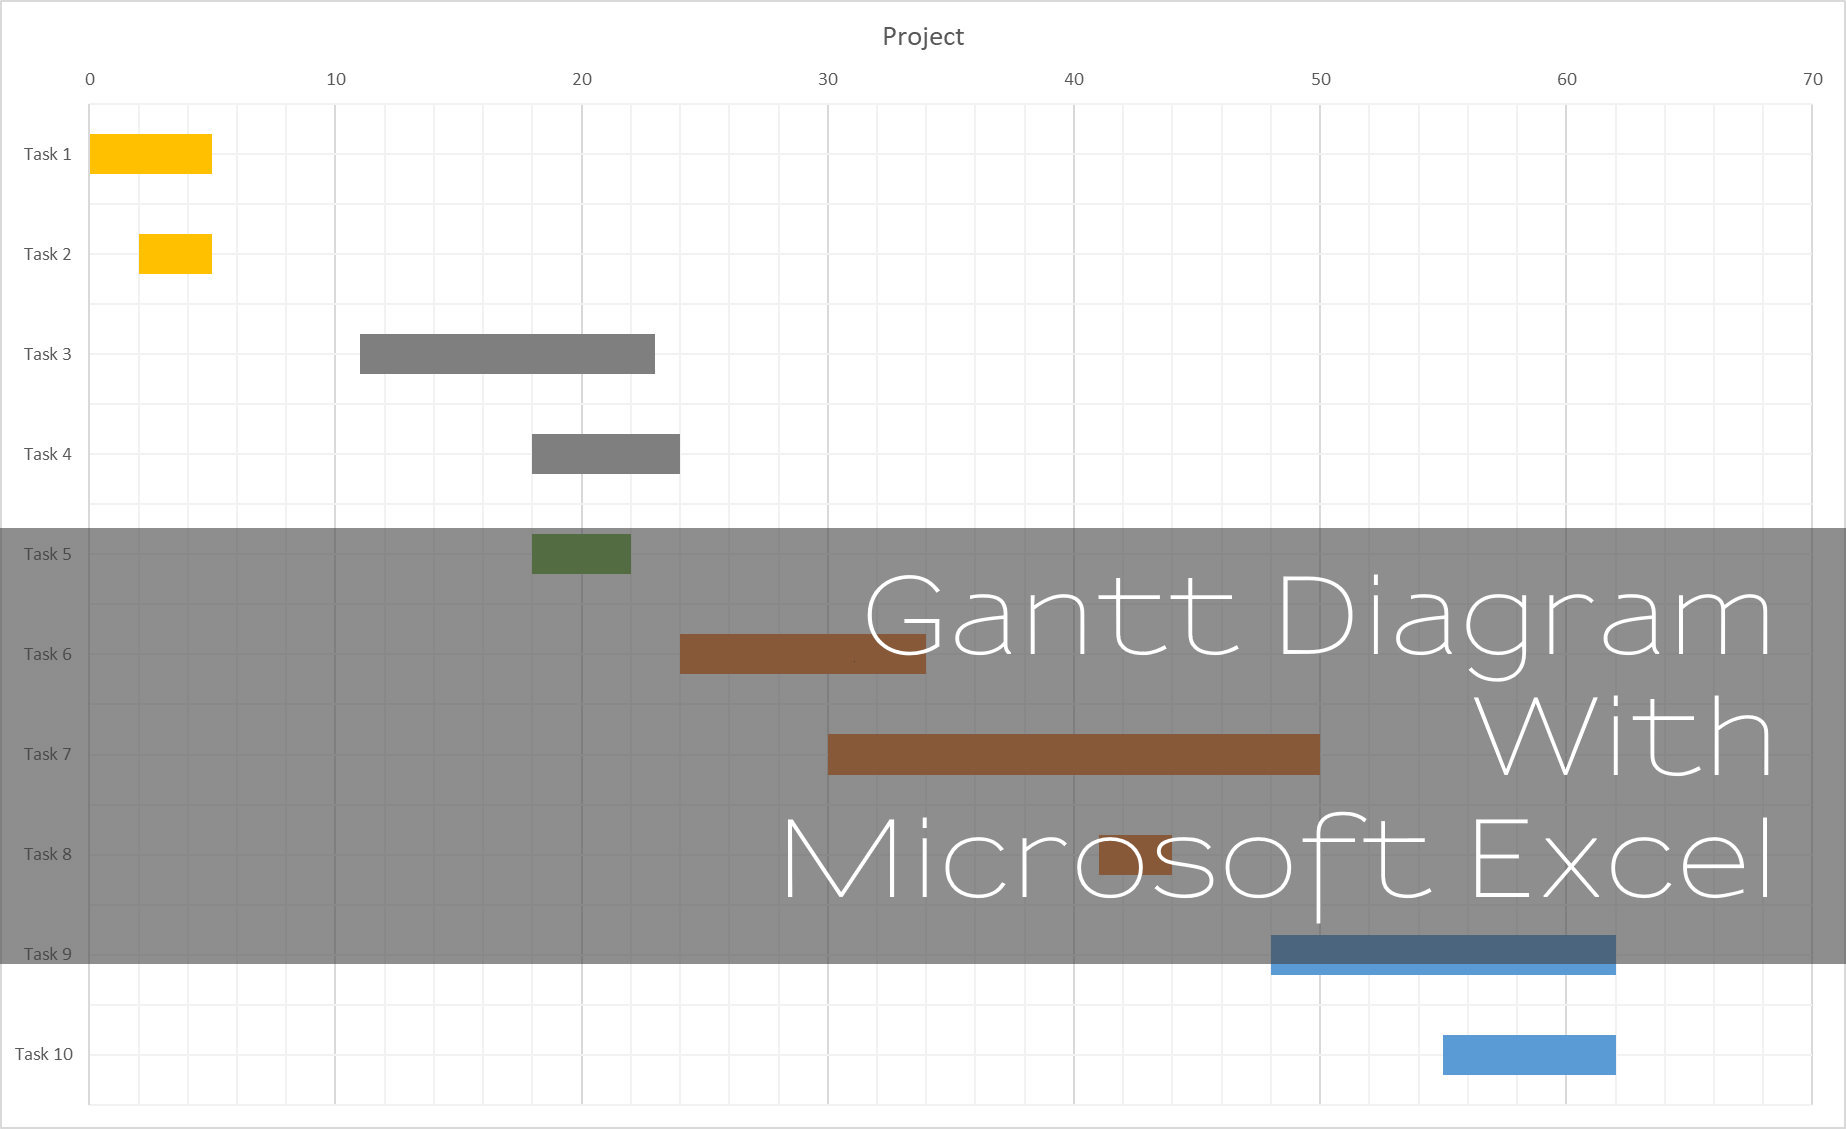 Gantt Diagram with Microsoft Excel